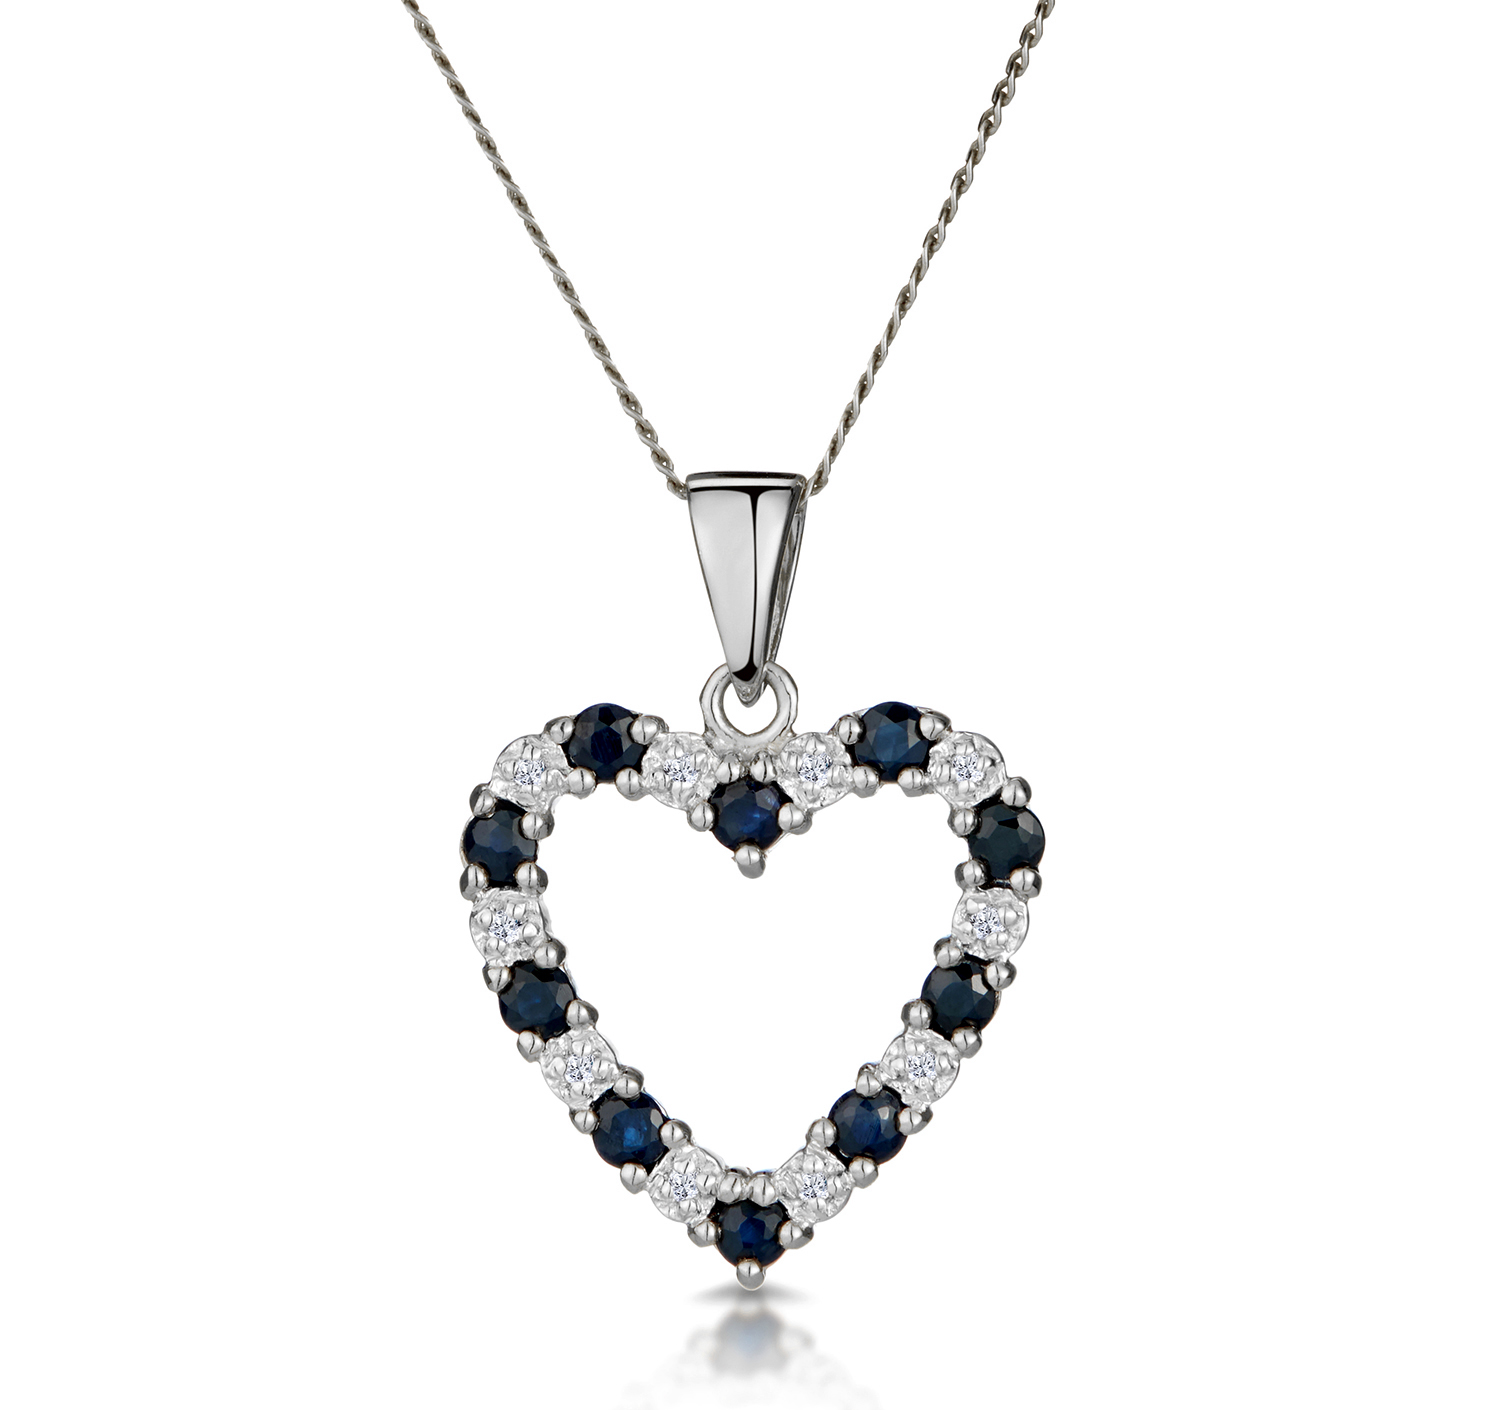 9K WHITE GOLD DIAMOND AND SAPPHIRE PENDANT 0.03CT